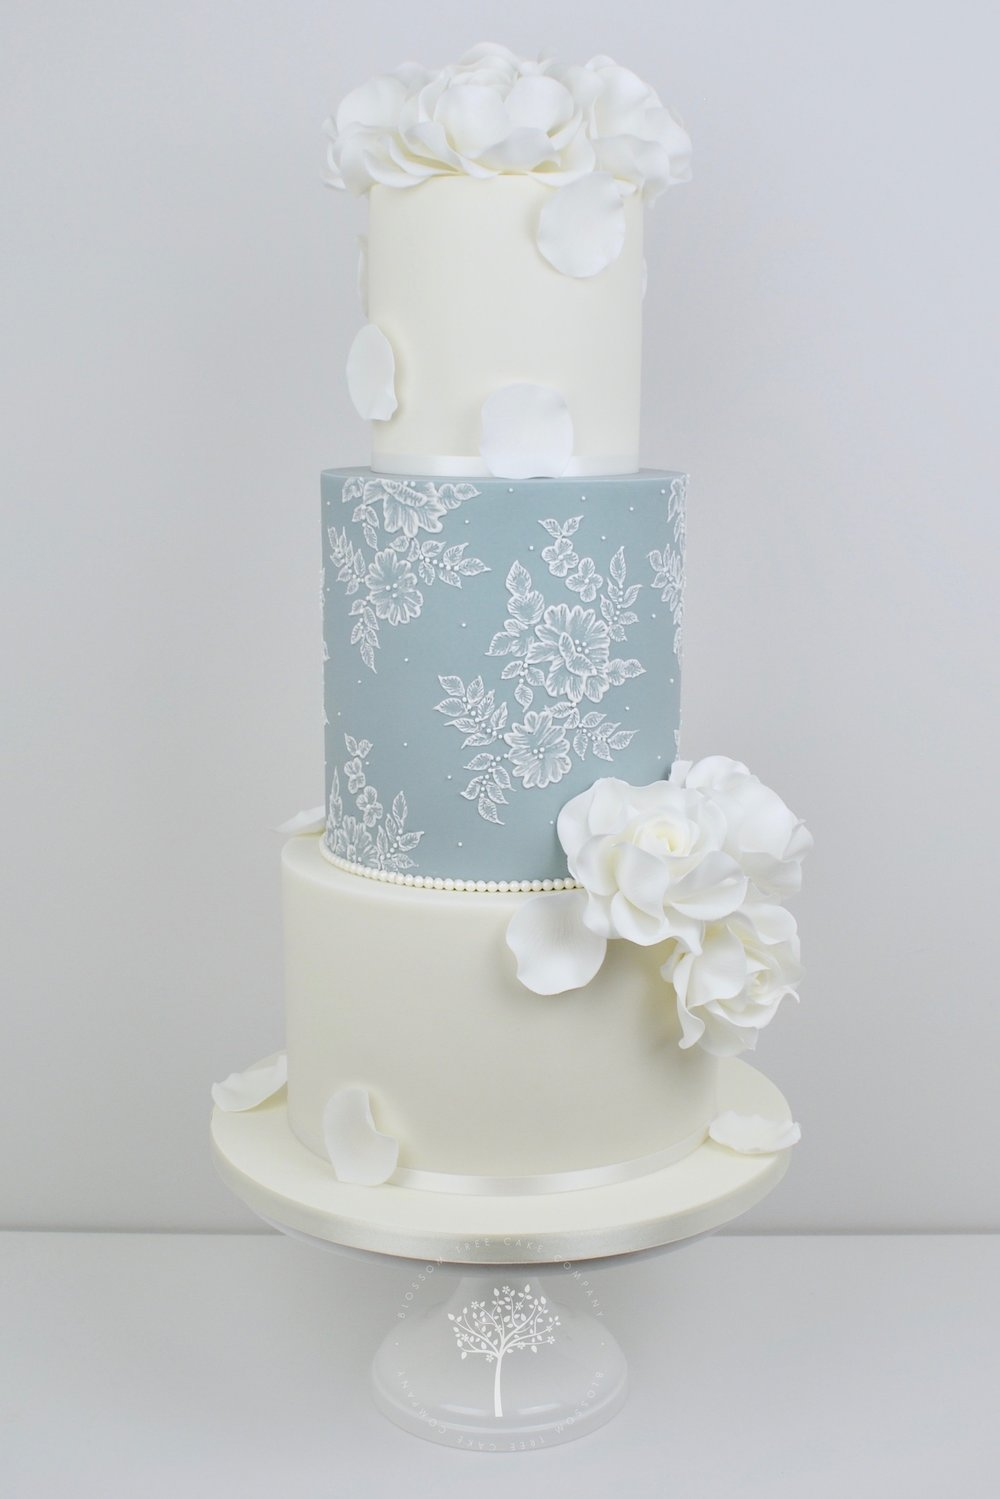 White Roses and Lace wedding cake by Blossom Tree Cake Company Harrogate North Yorkshire.jpg